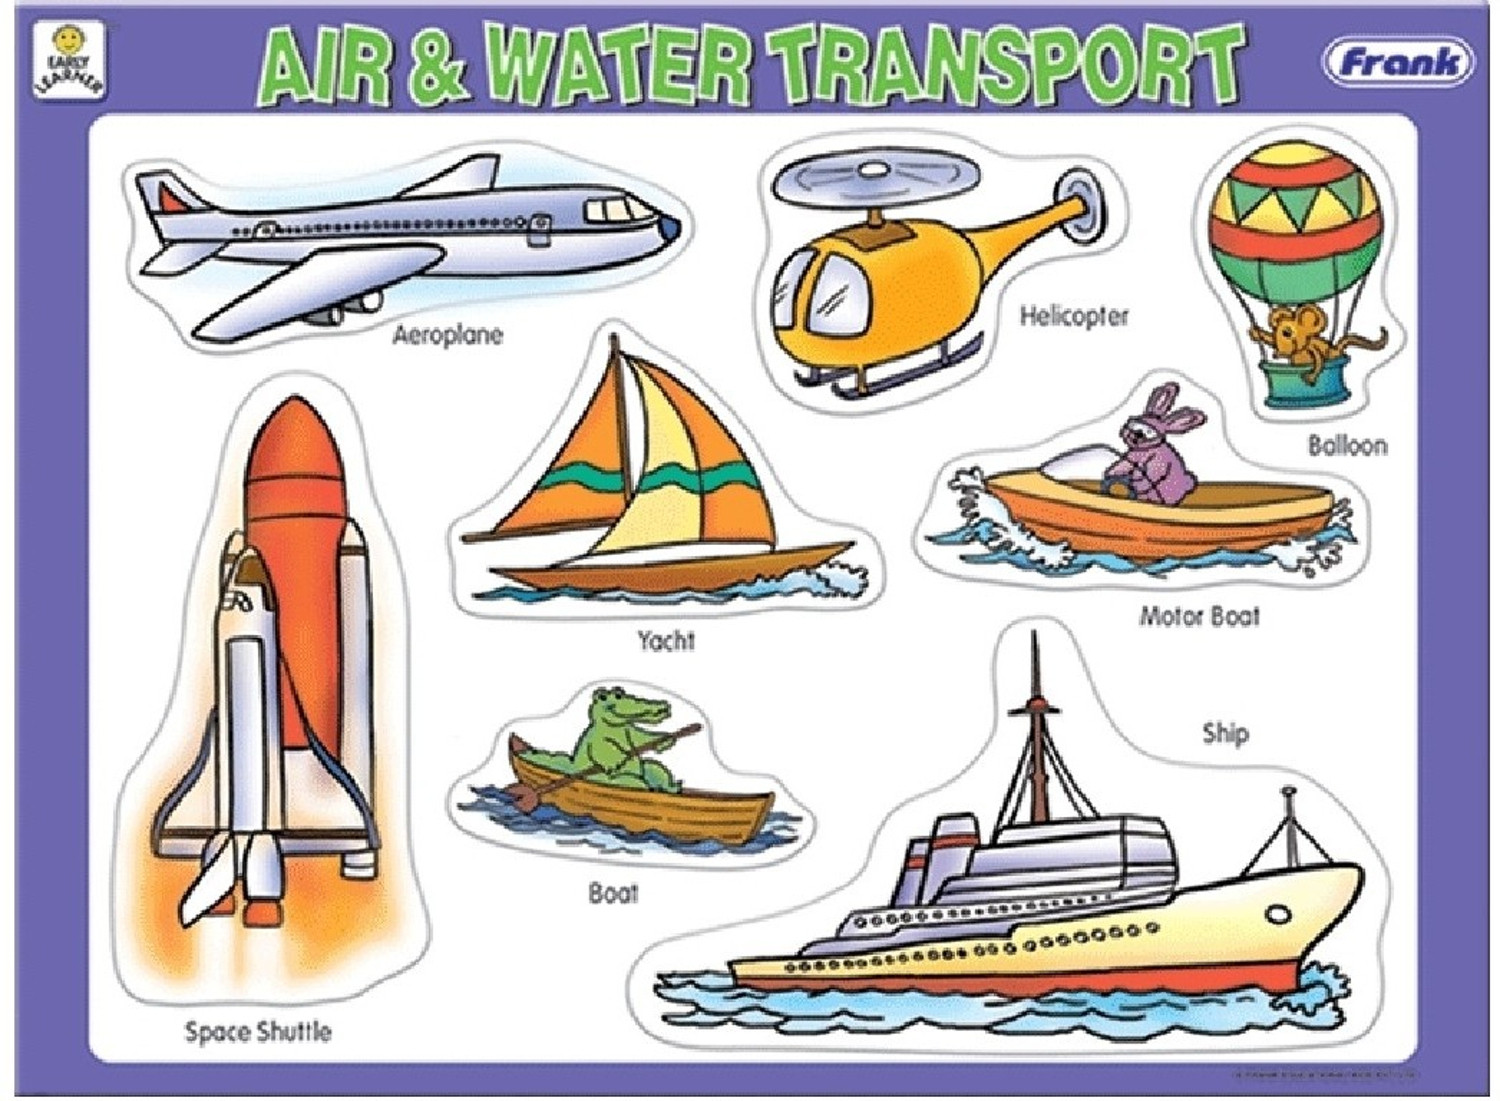 Frank Air And Water Transport